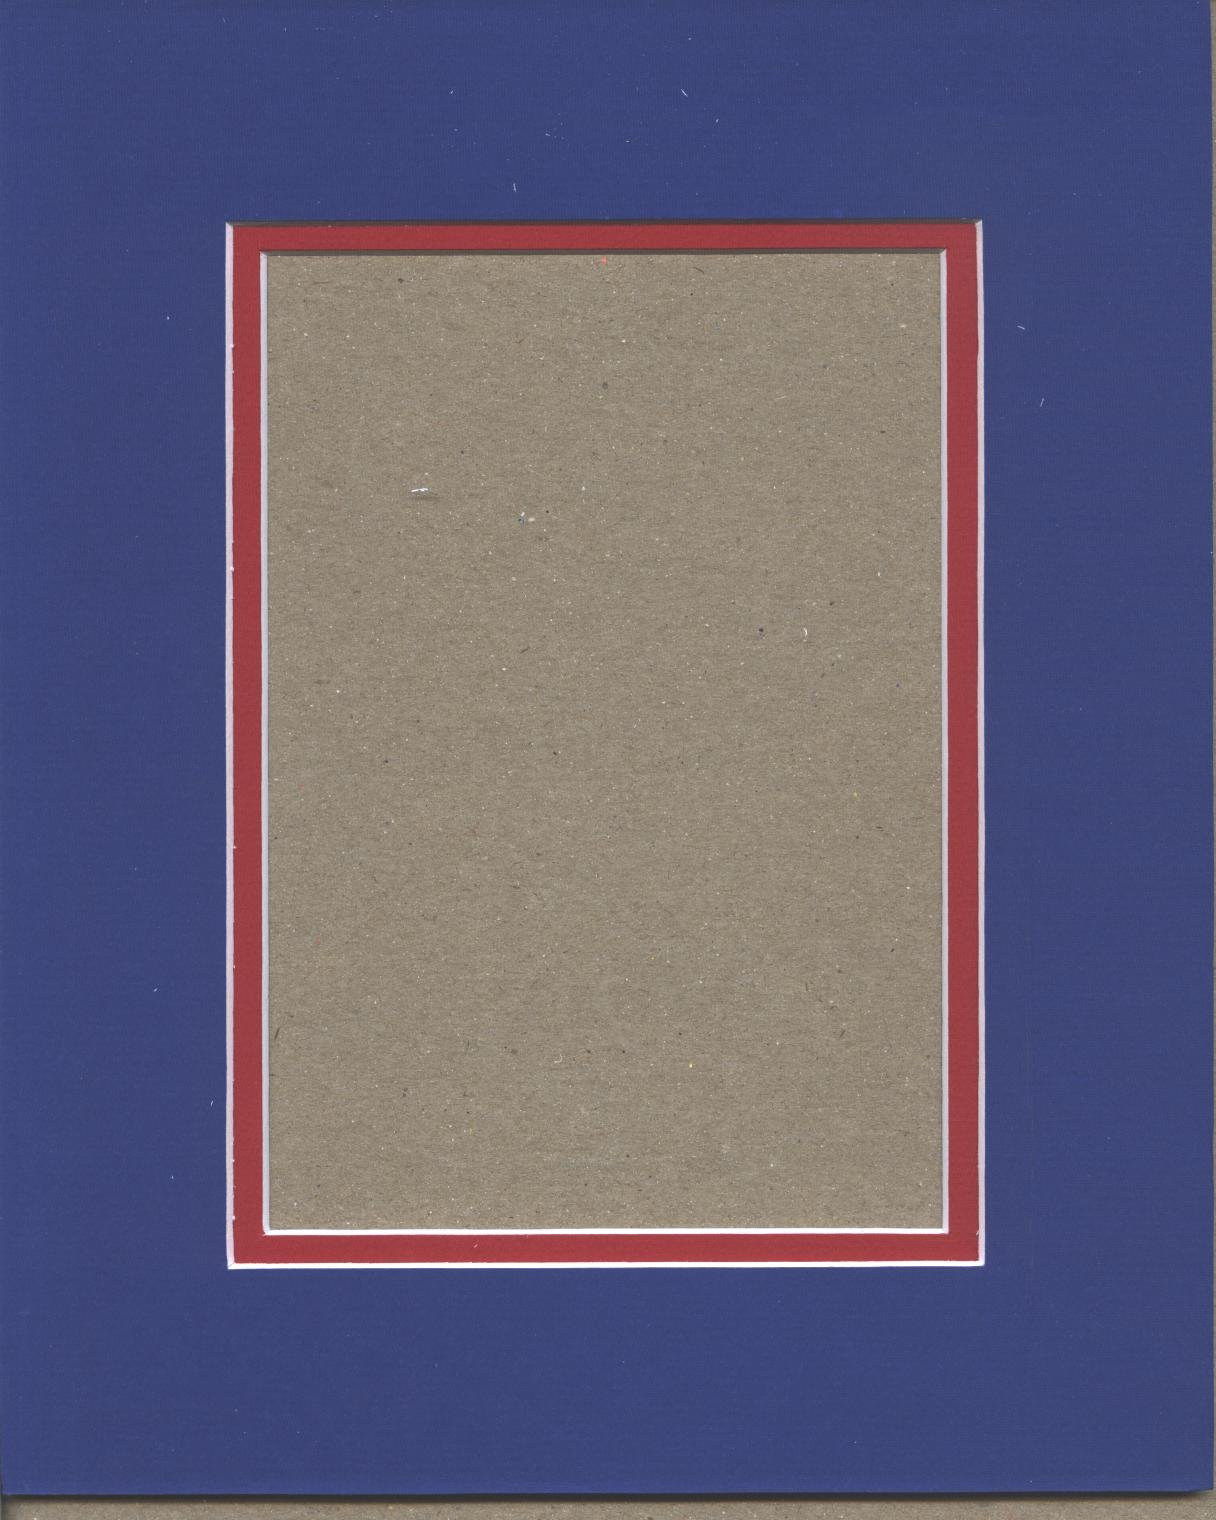 16x20 Royal Blue & Bright Red Double Picture Mat, Bevel Cut for 11x14 Picture or Photo by bux1 picture matting